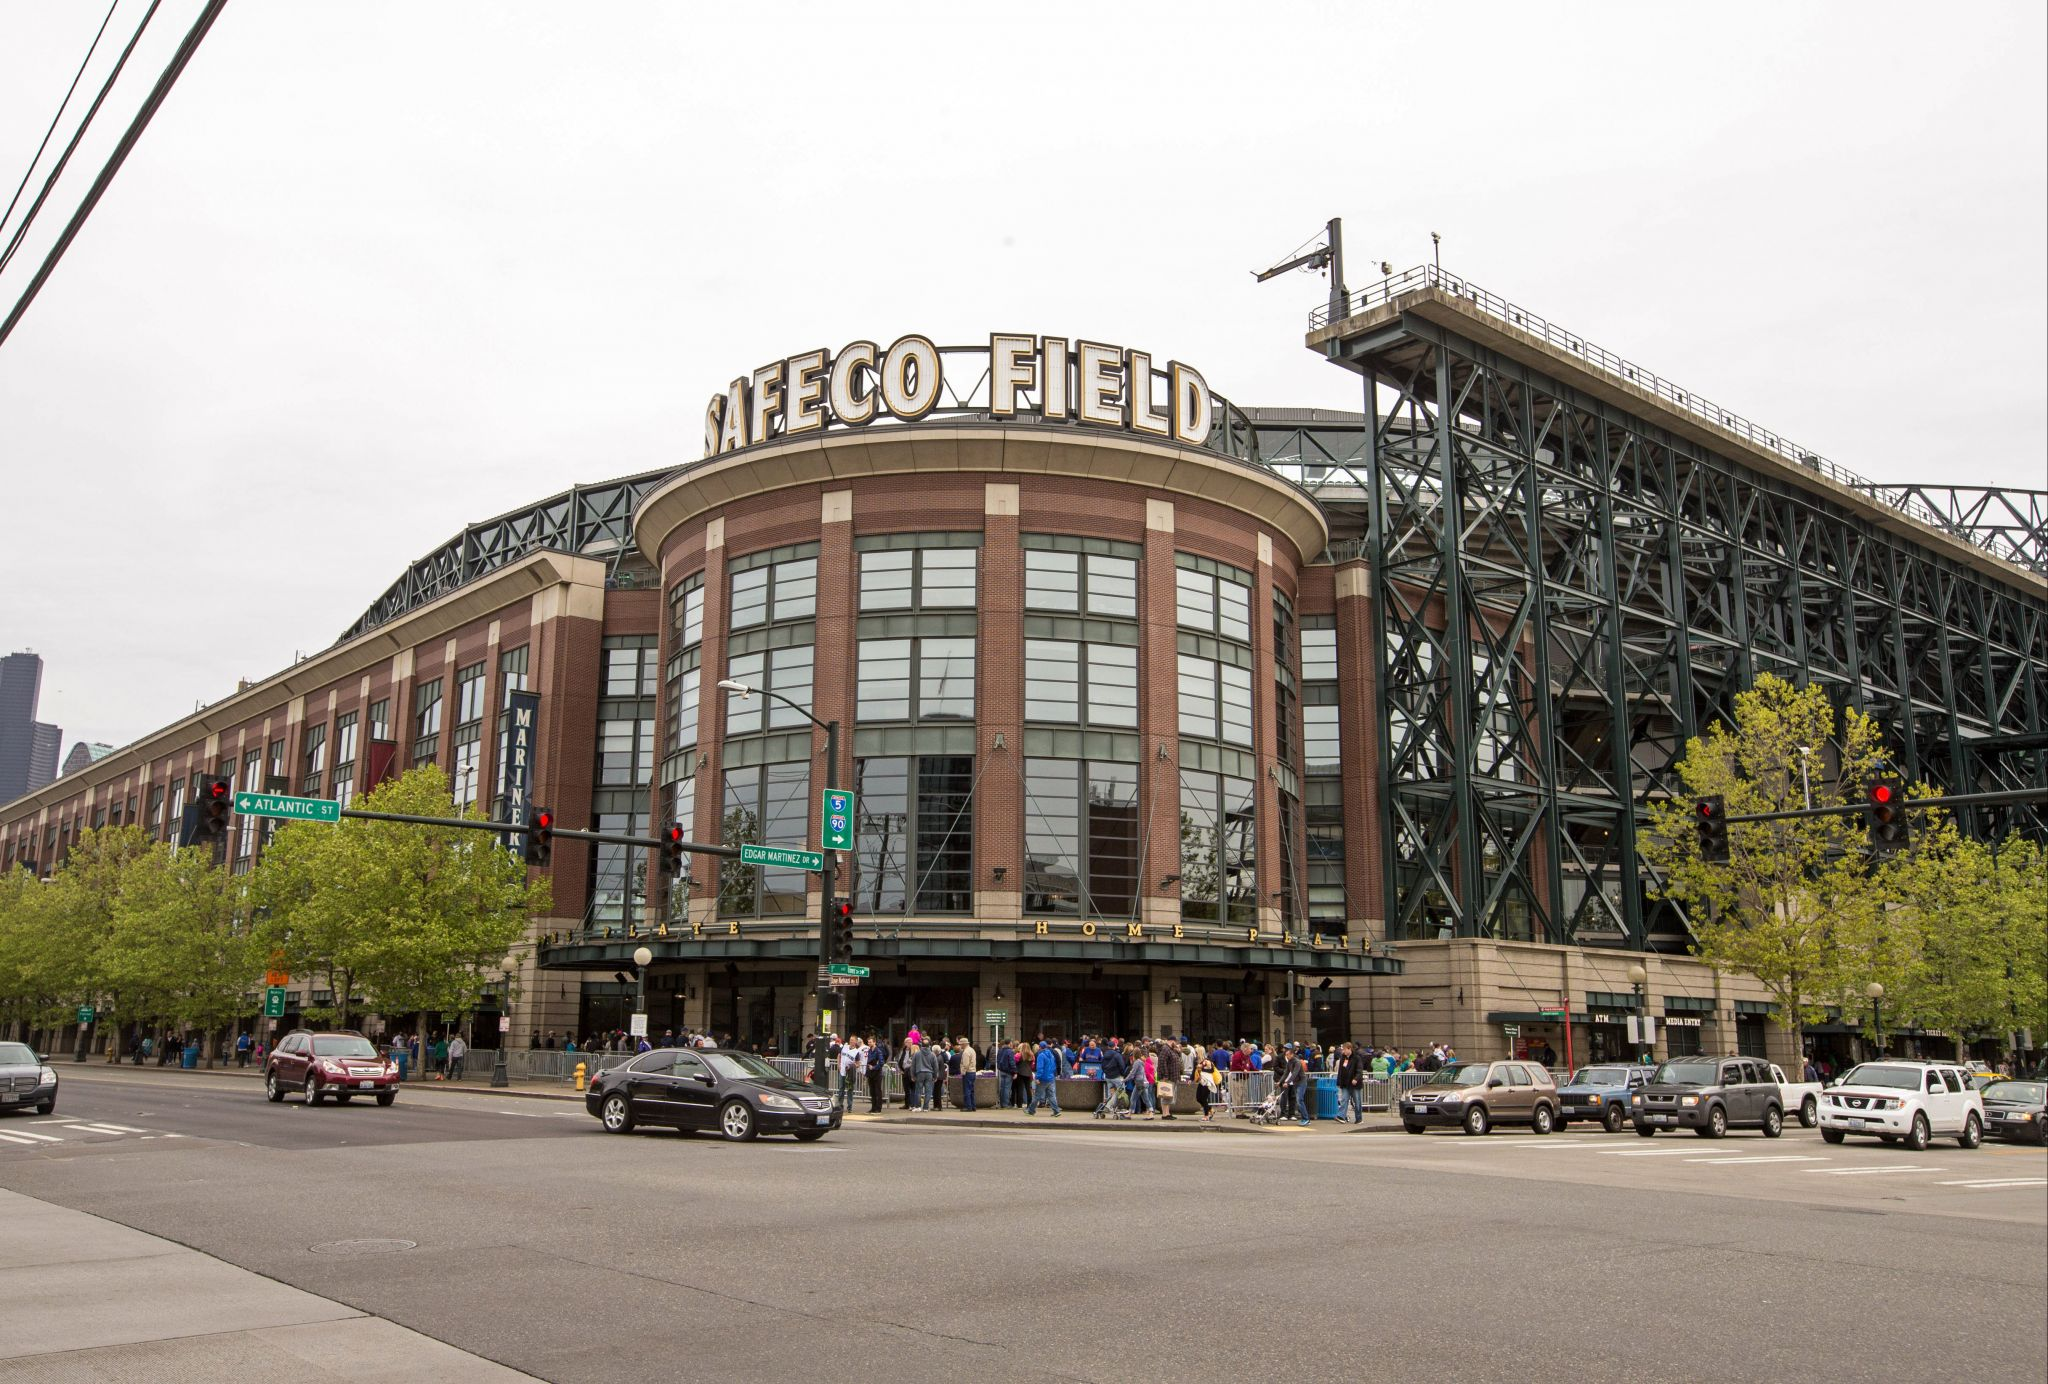 Safeco Field to new name after seattlepi